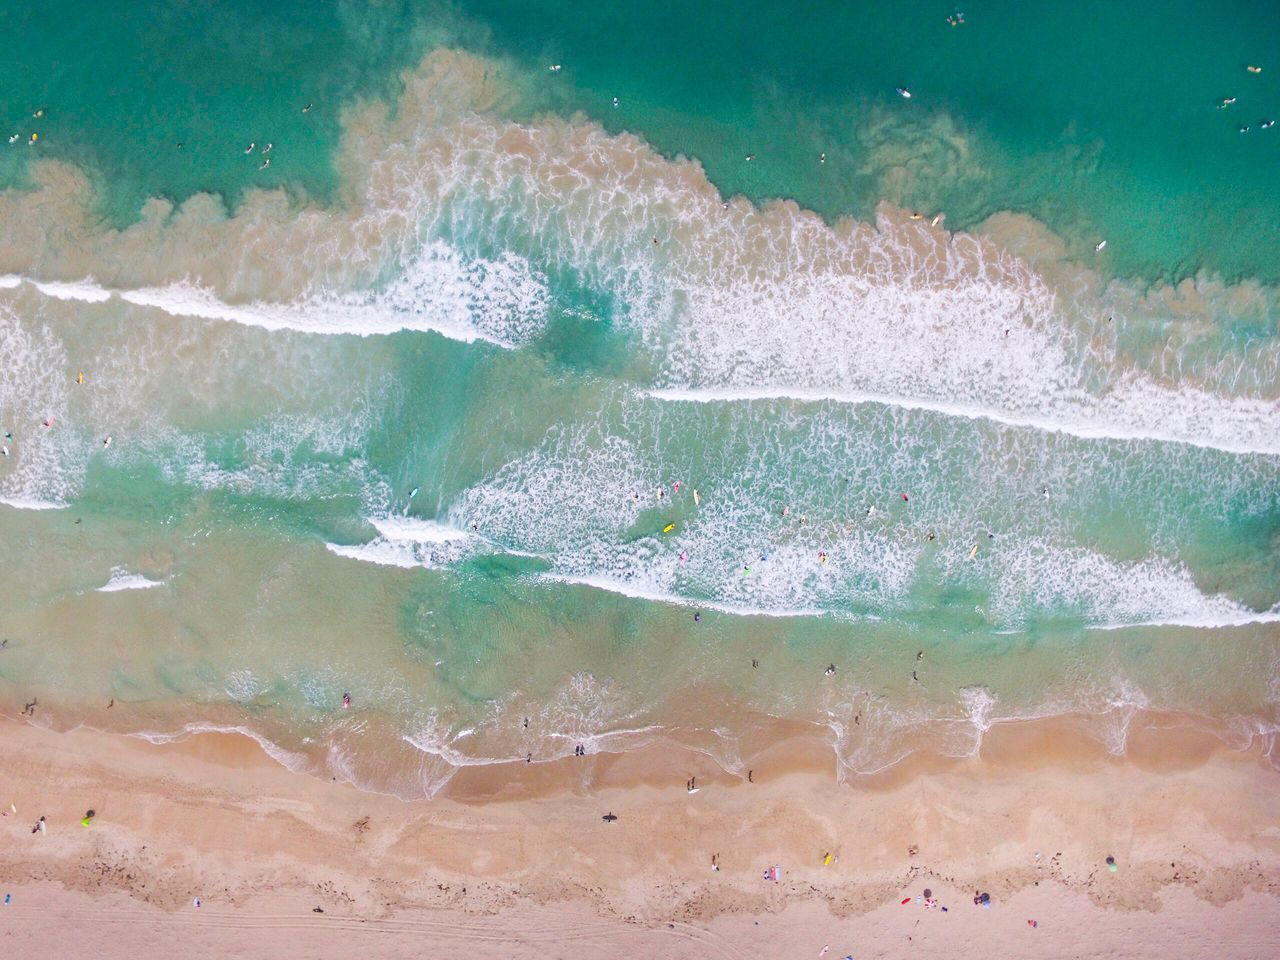 The morning surf. Water Sea Wave Day Waves Hanging Out Hello World Flying High Travel Check This Out Adventure Beautiful Beauty In Nature Adventure Club Motion Nature Outdoors Sand Close-up Beauty In Nature Beach Power In Nature